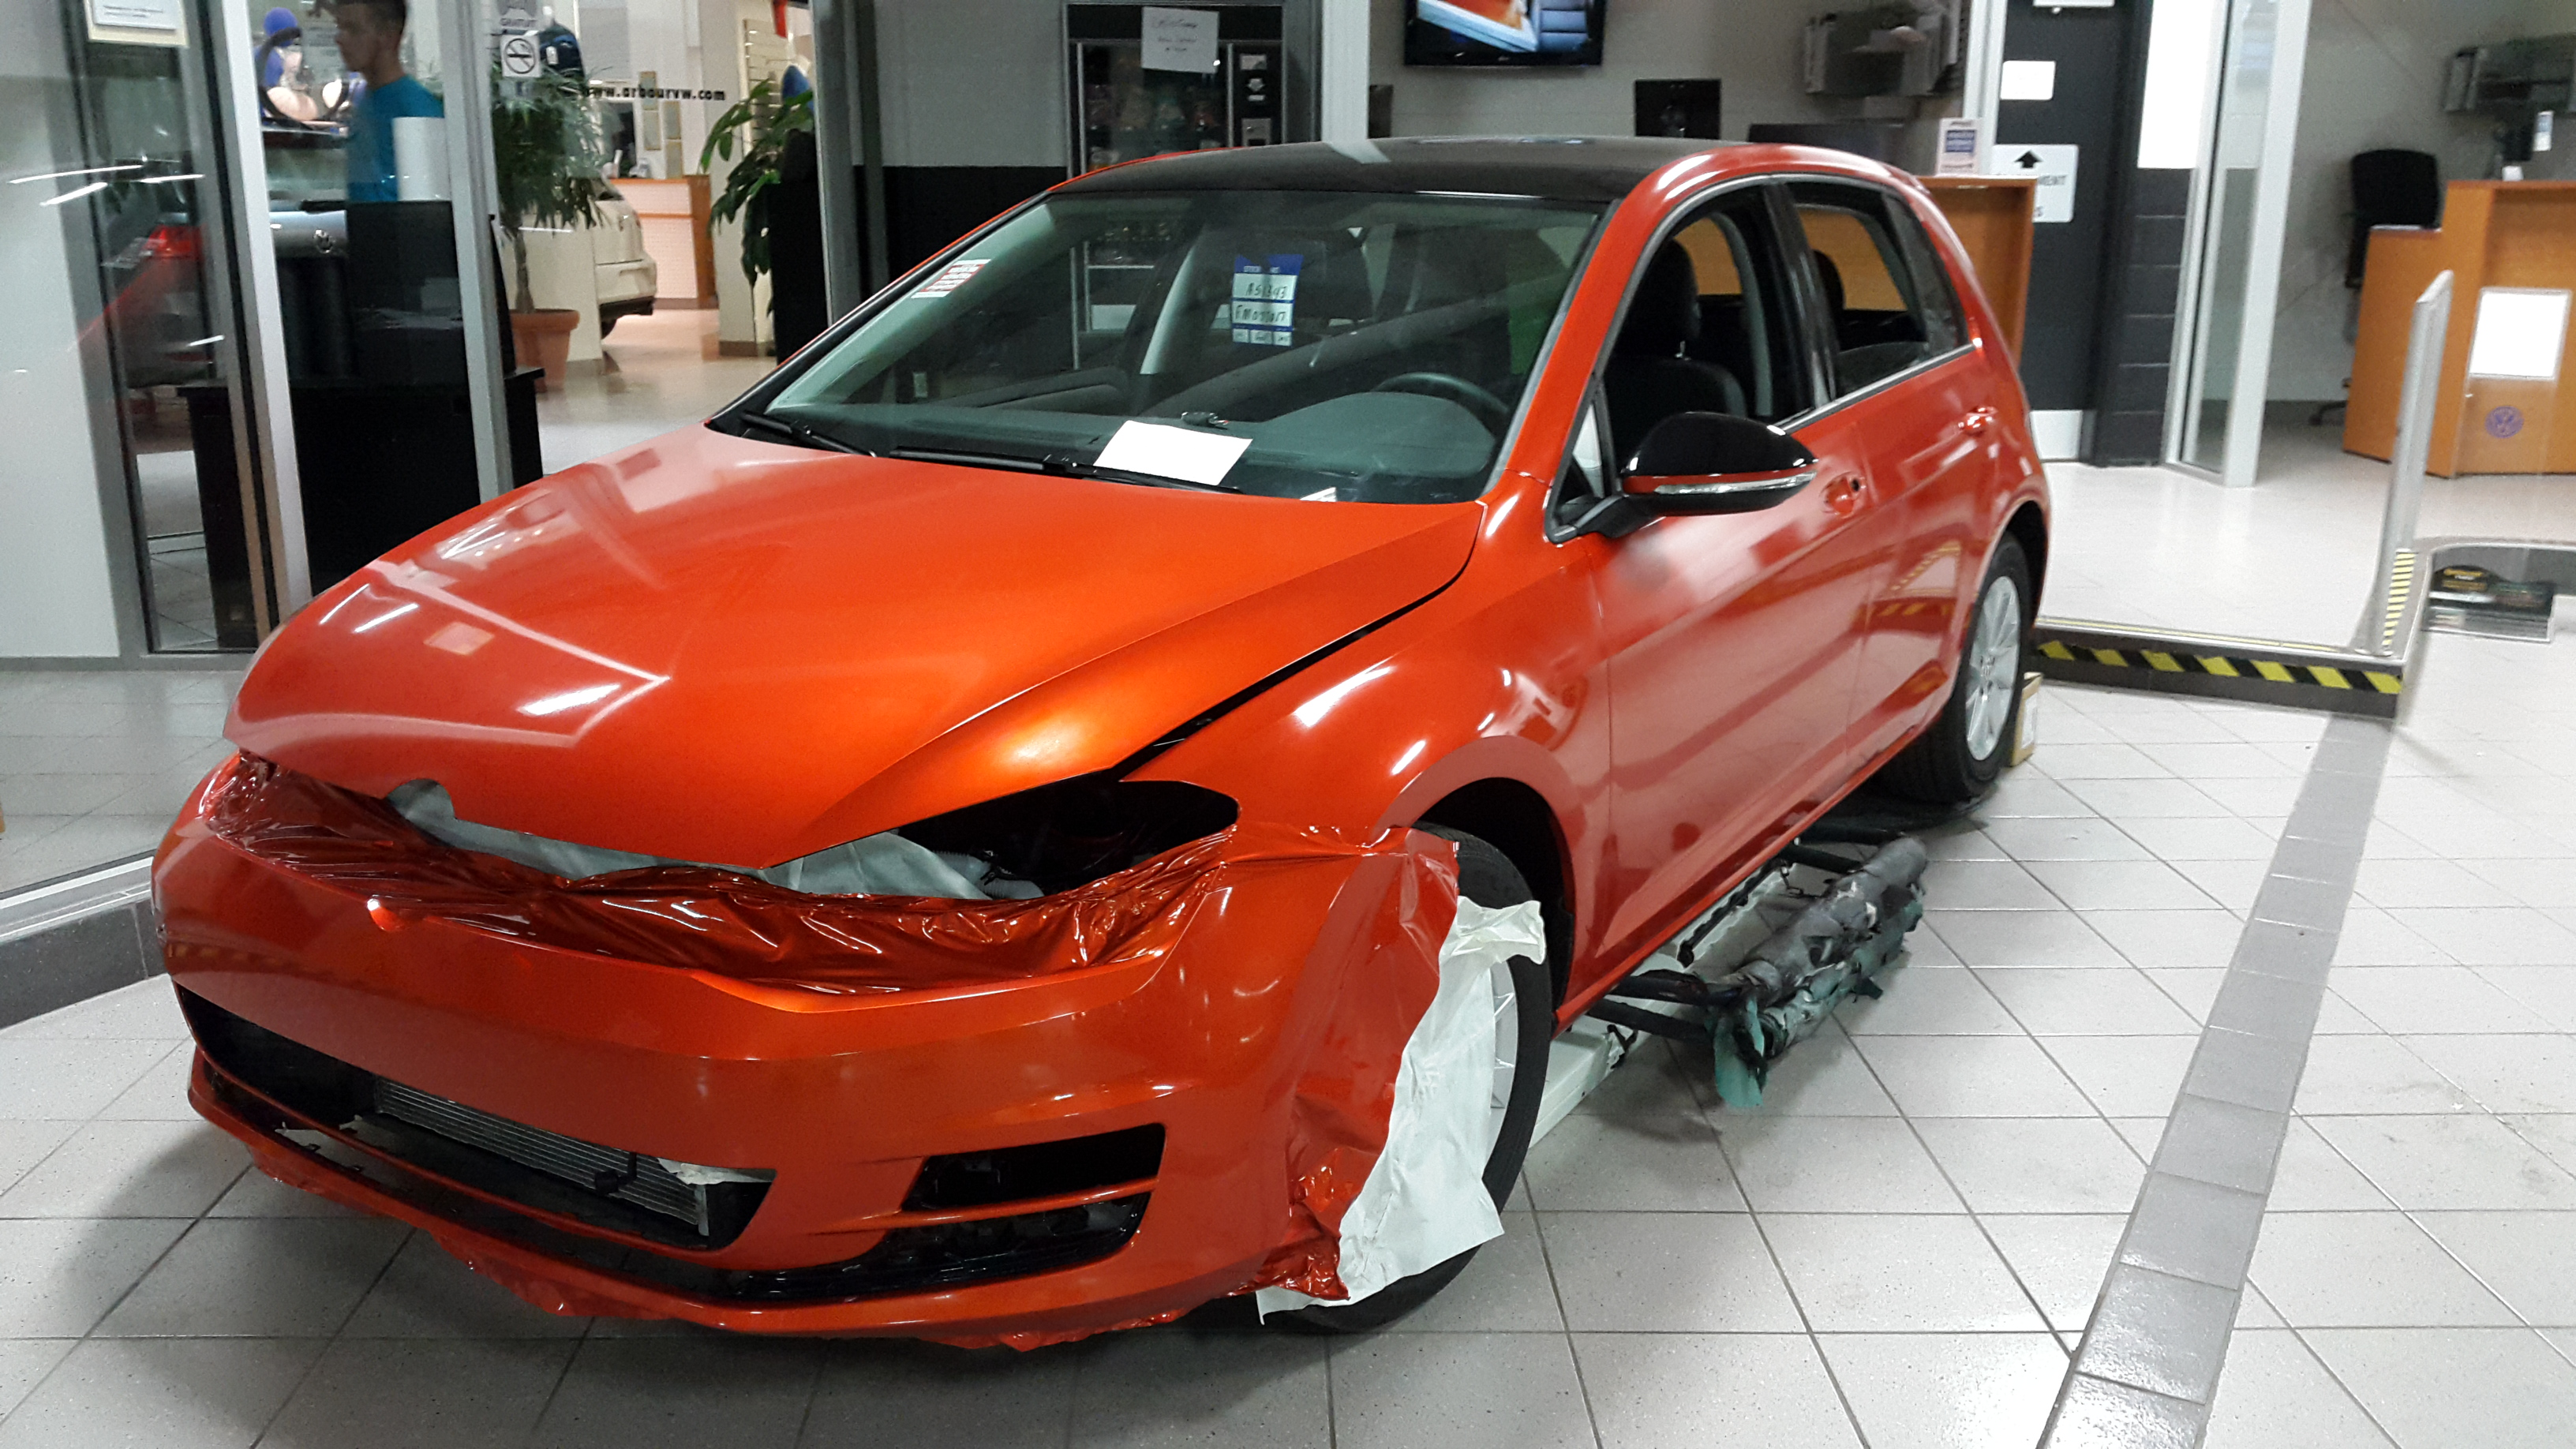 Volkswagen Golf Tsi Vinyl Wrap Topwrap Ca Top Wrap Vinyl Wrap Commercial Graphics And Film Specialists